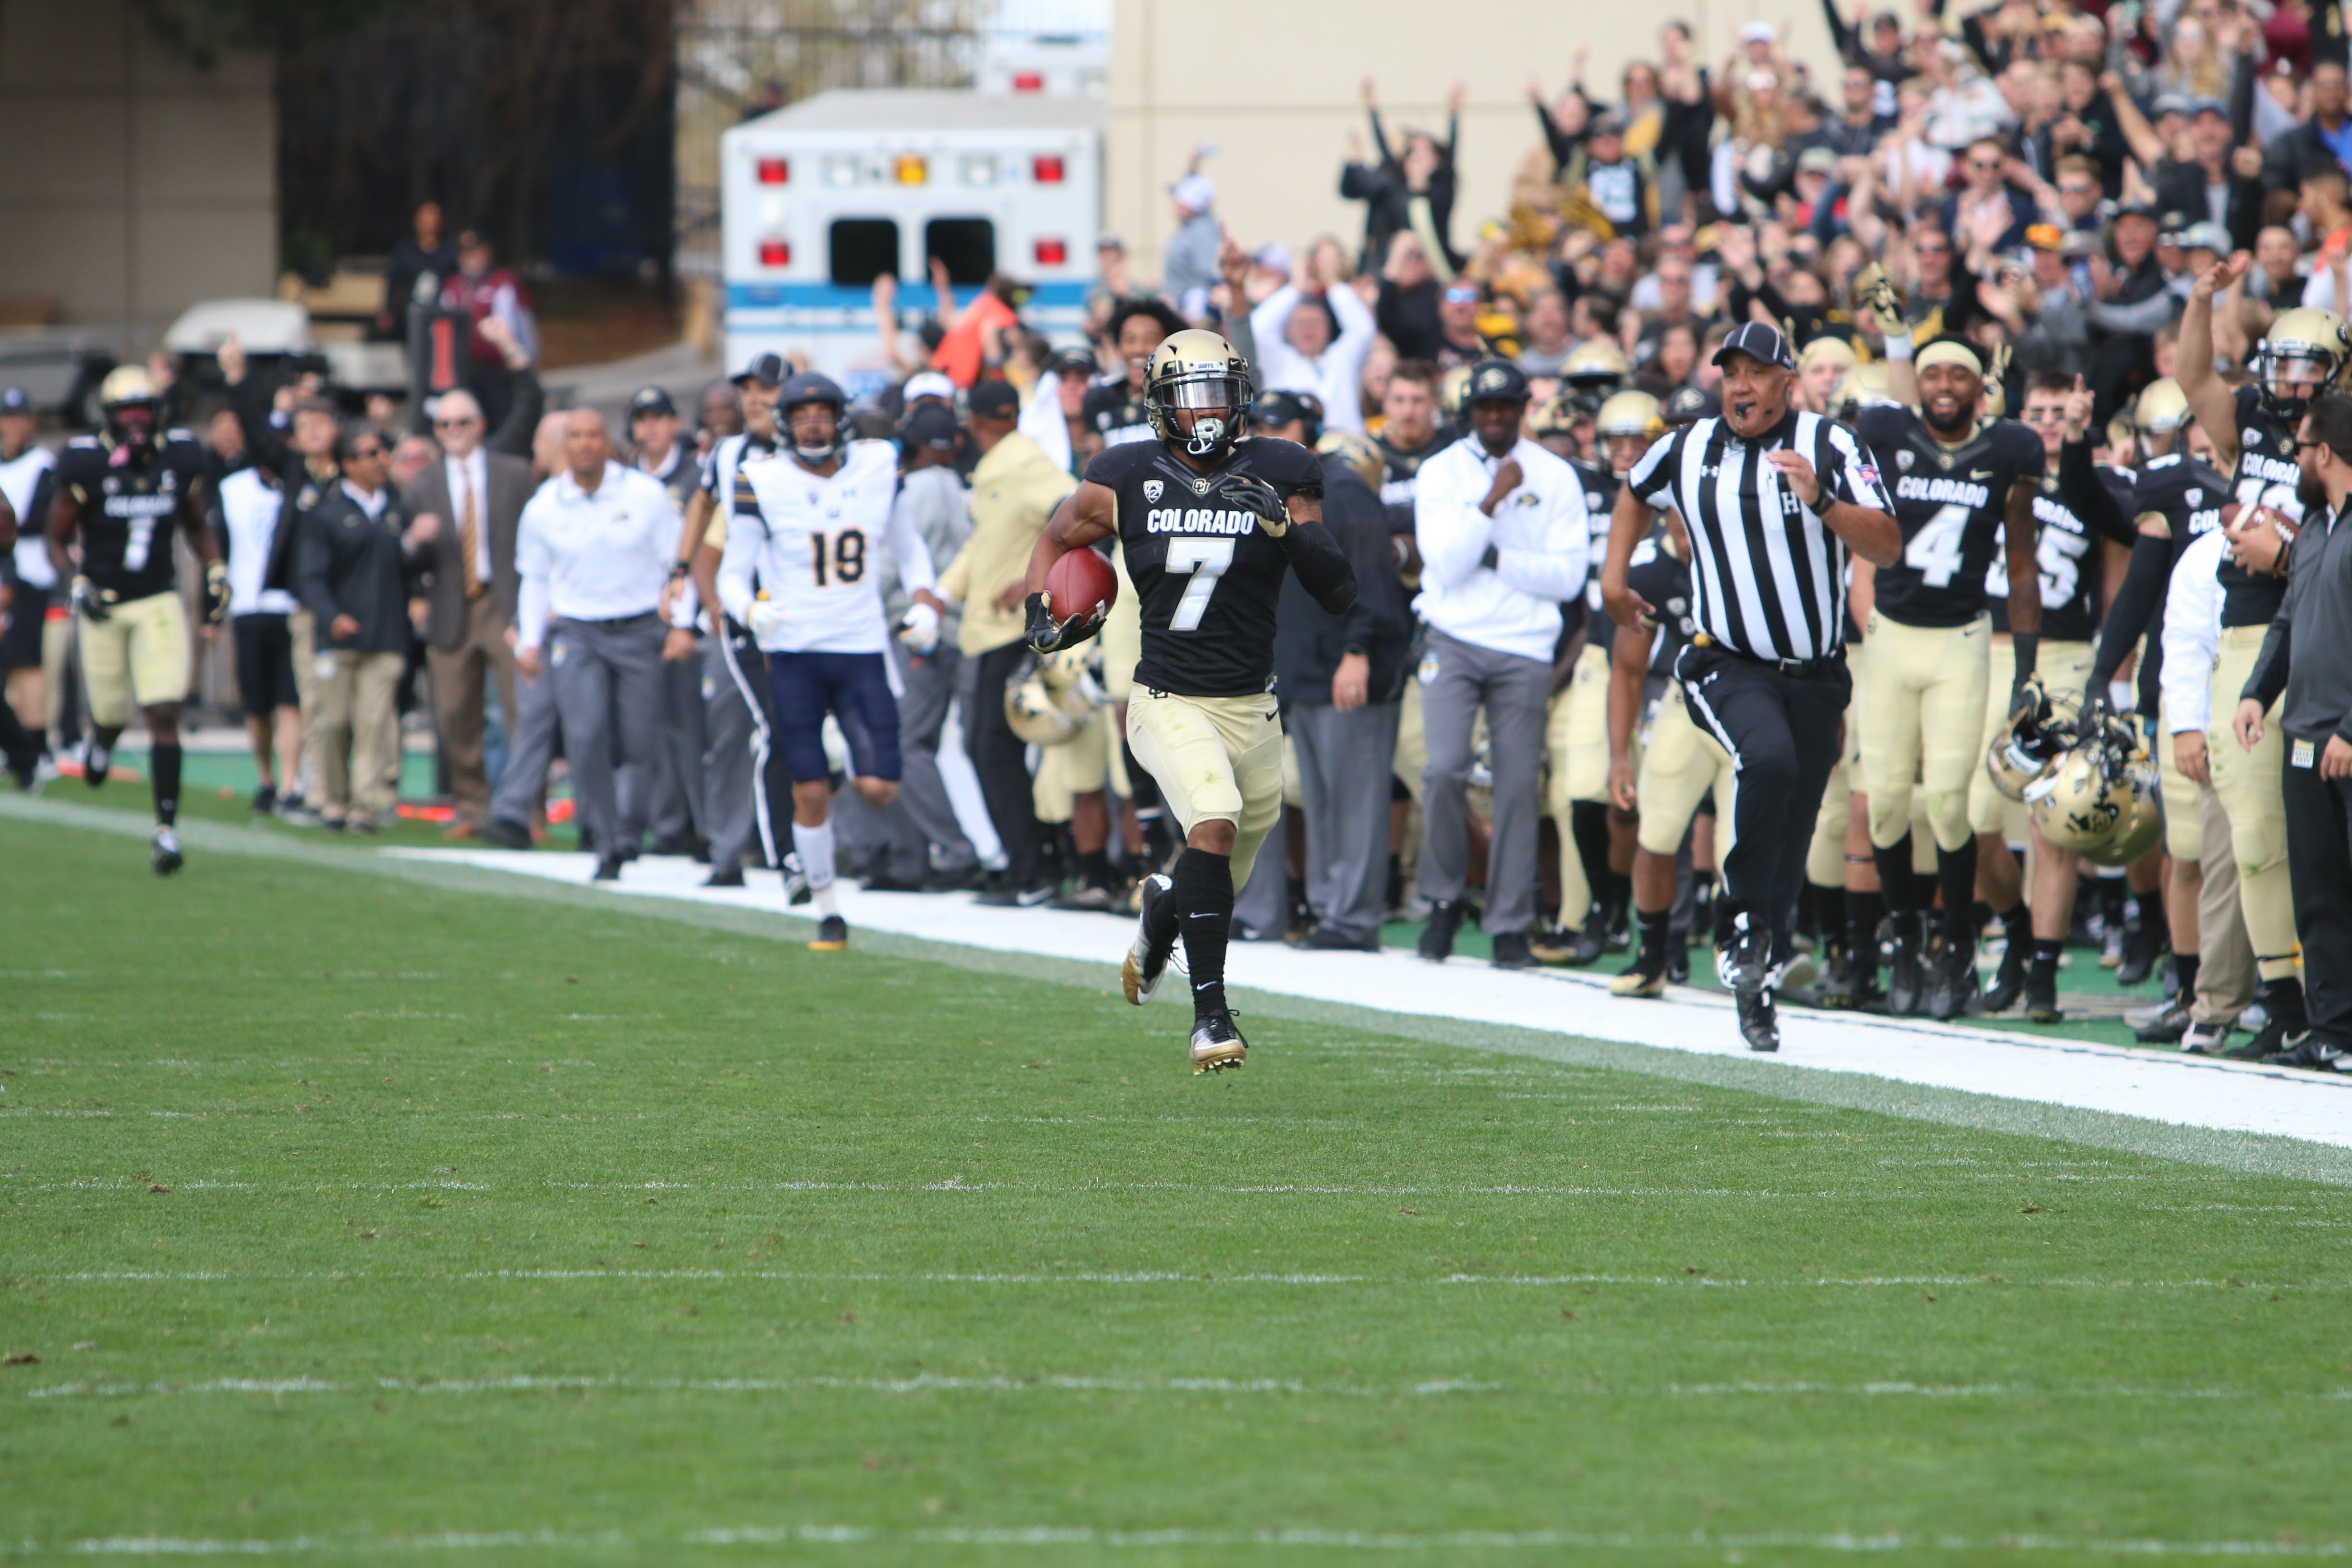 Buffs convincingly defeat Cal, 44-28